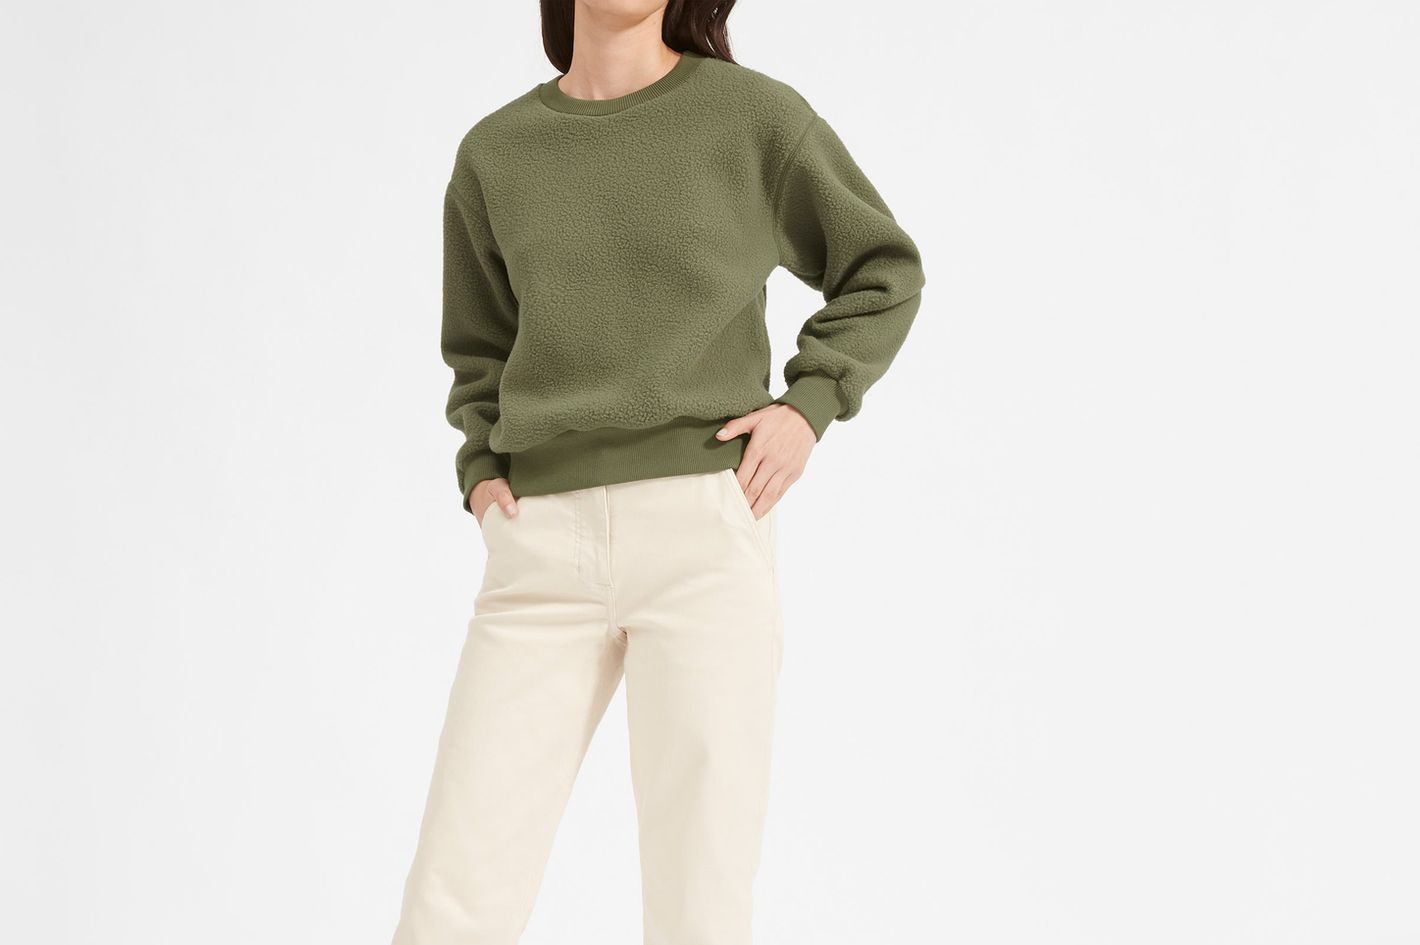 Everlane The ReNew Fleece Sweatshirt